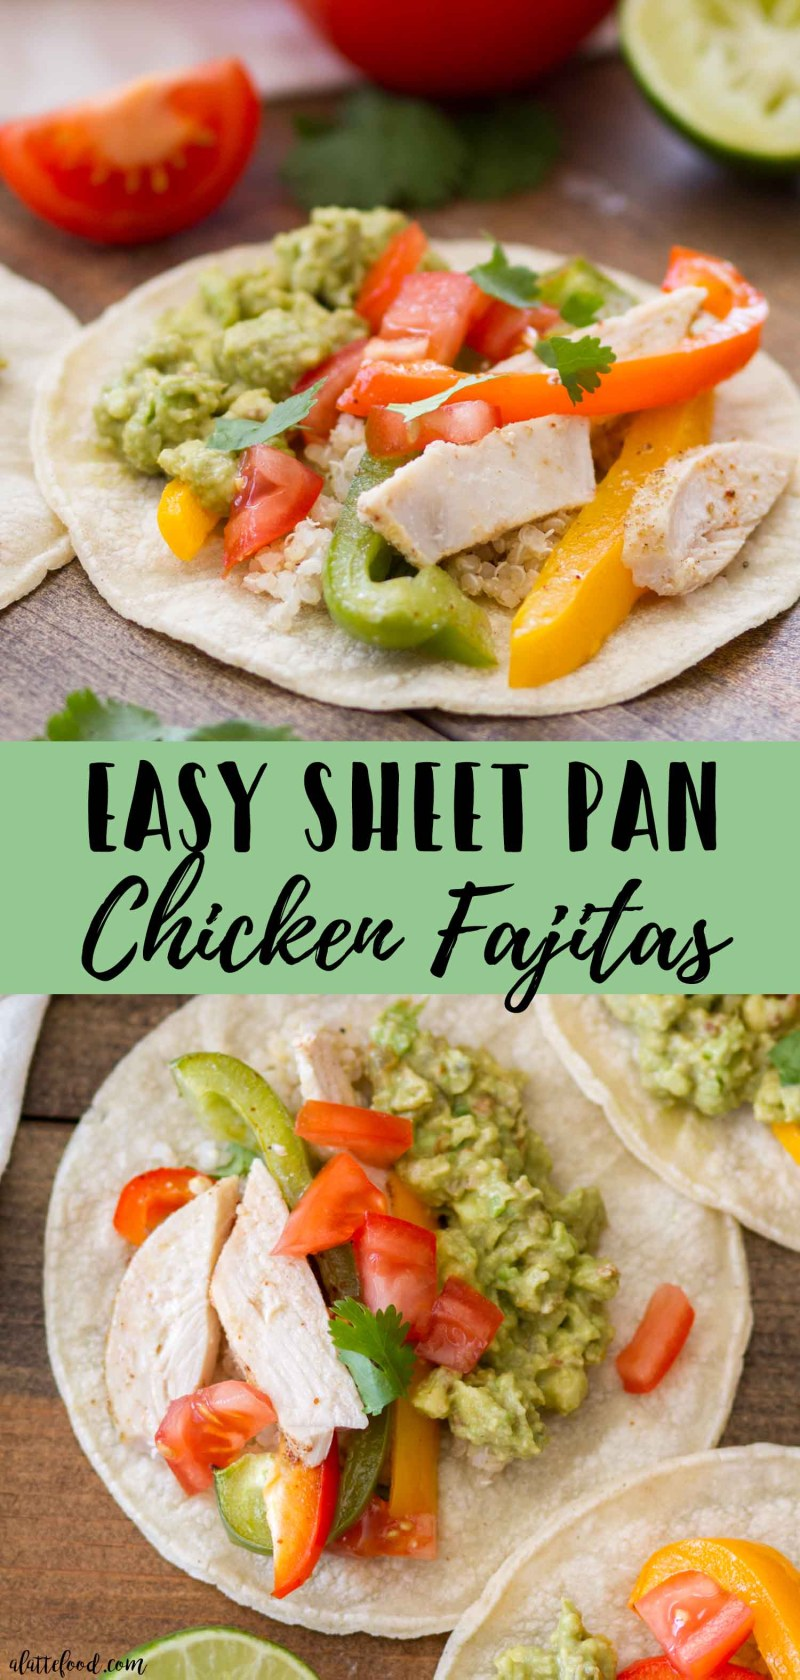 Easy Sheet Pan Chicken Fajitas -- collage photo of fajitas